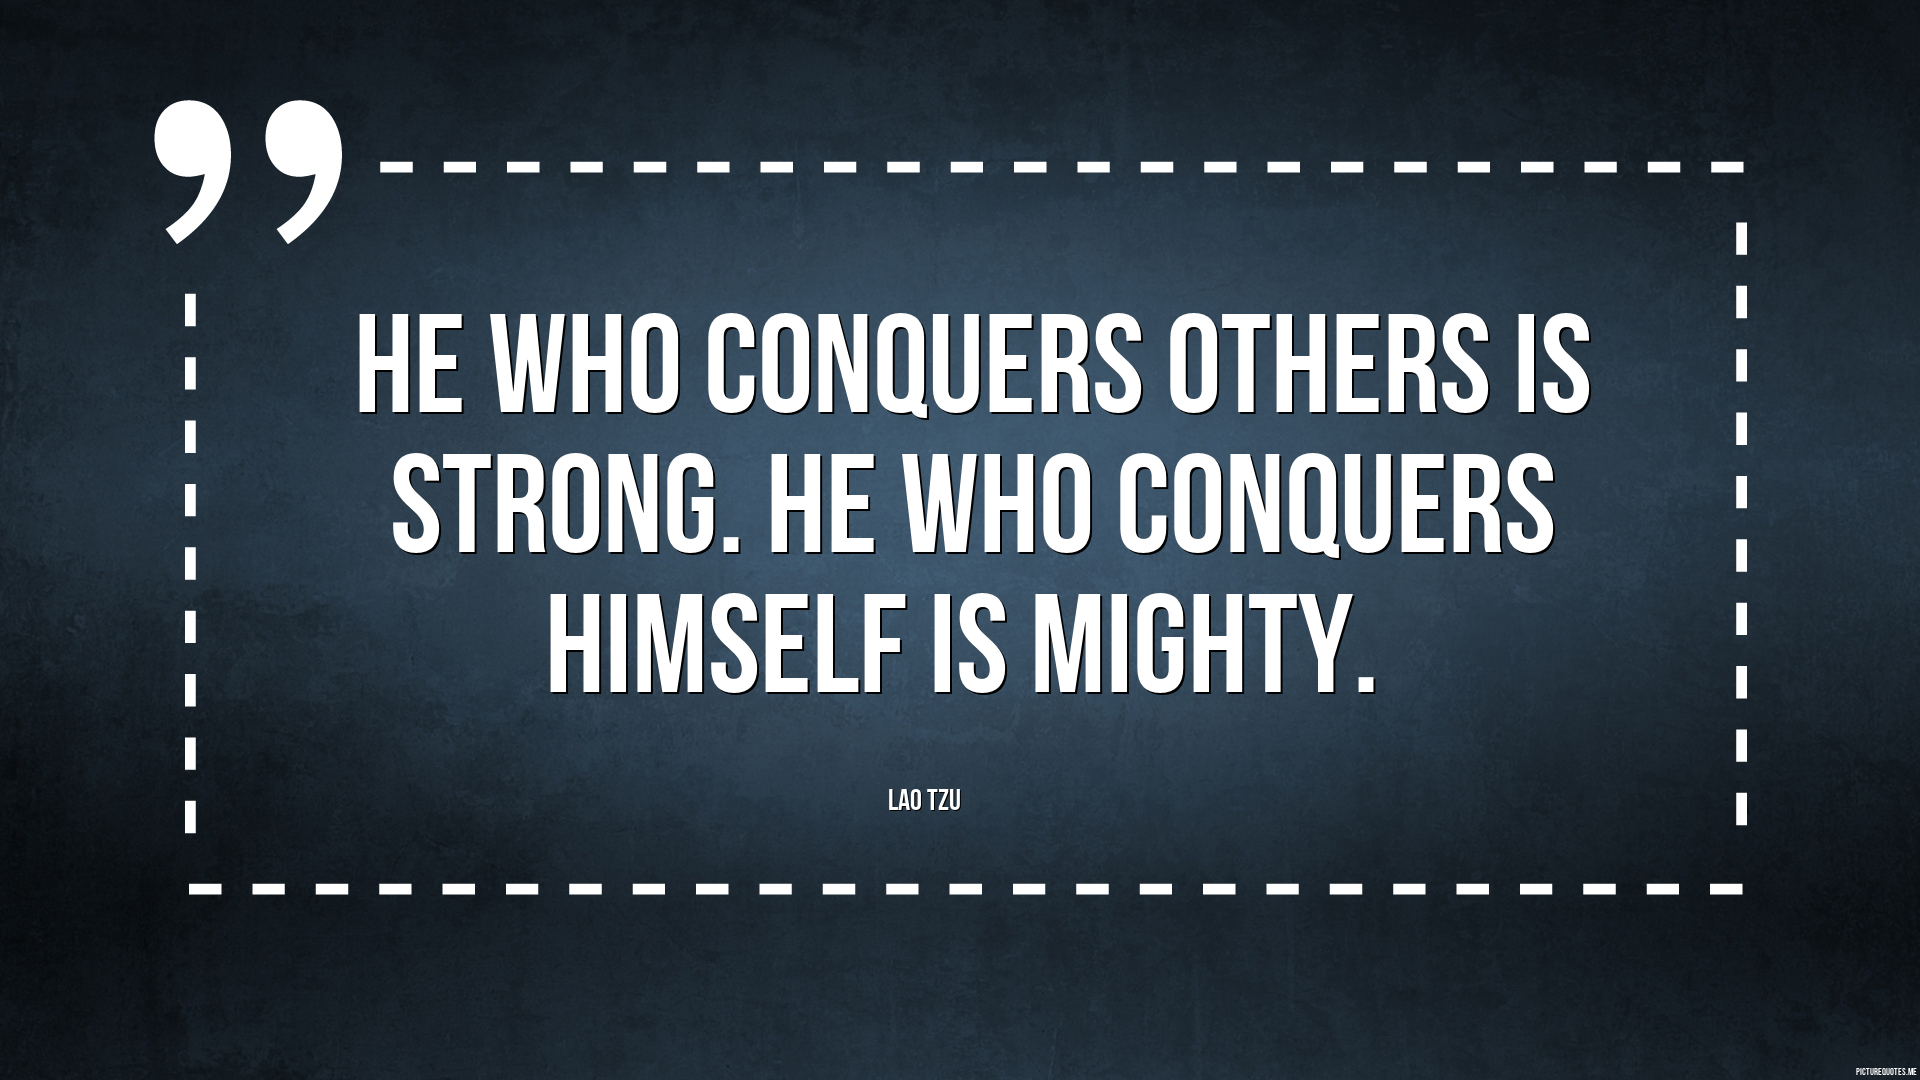 Lao Tzu Quotes Life He Who Conquers Others Is Stronghe Who Conquers Himself Is